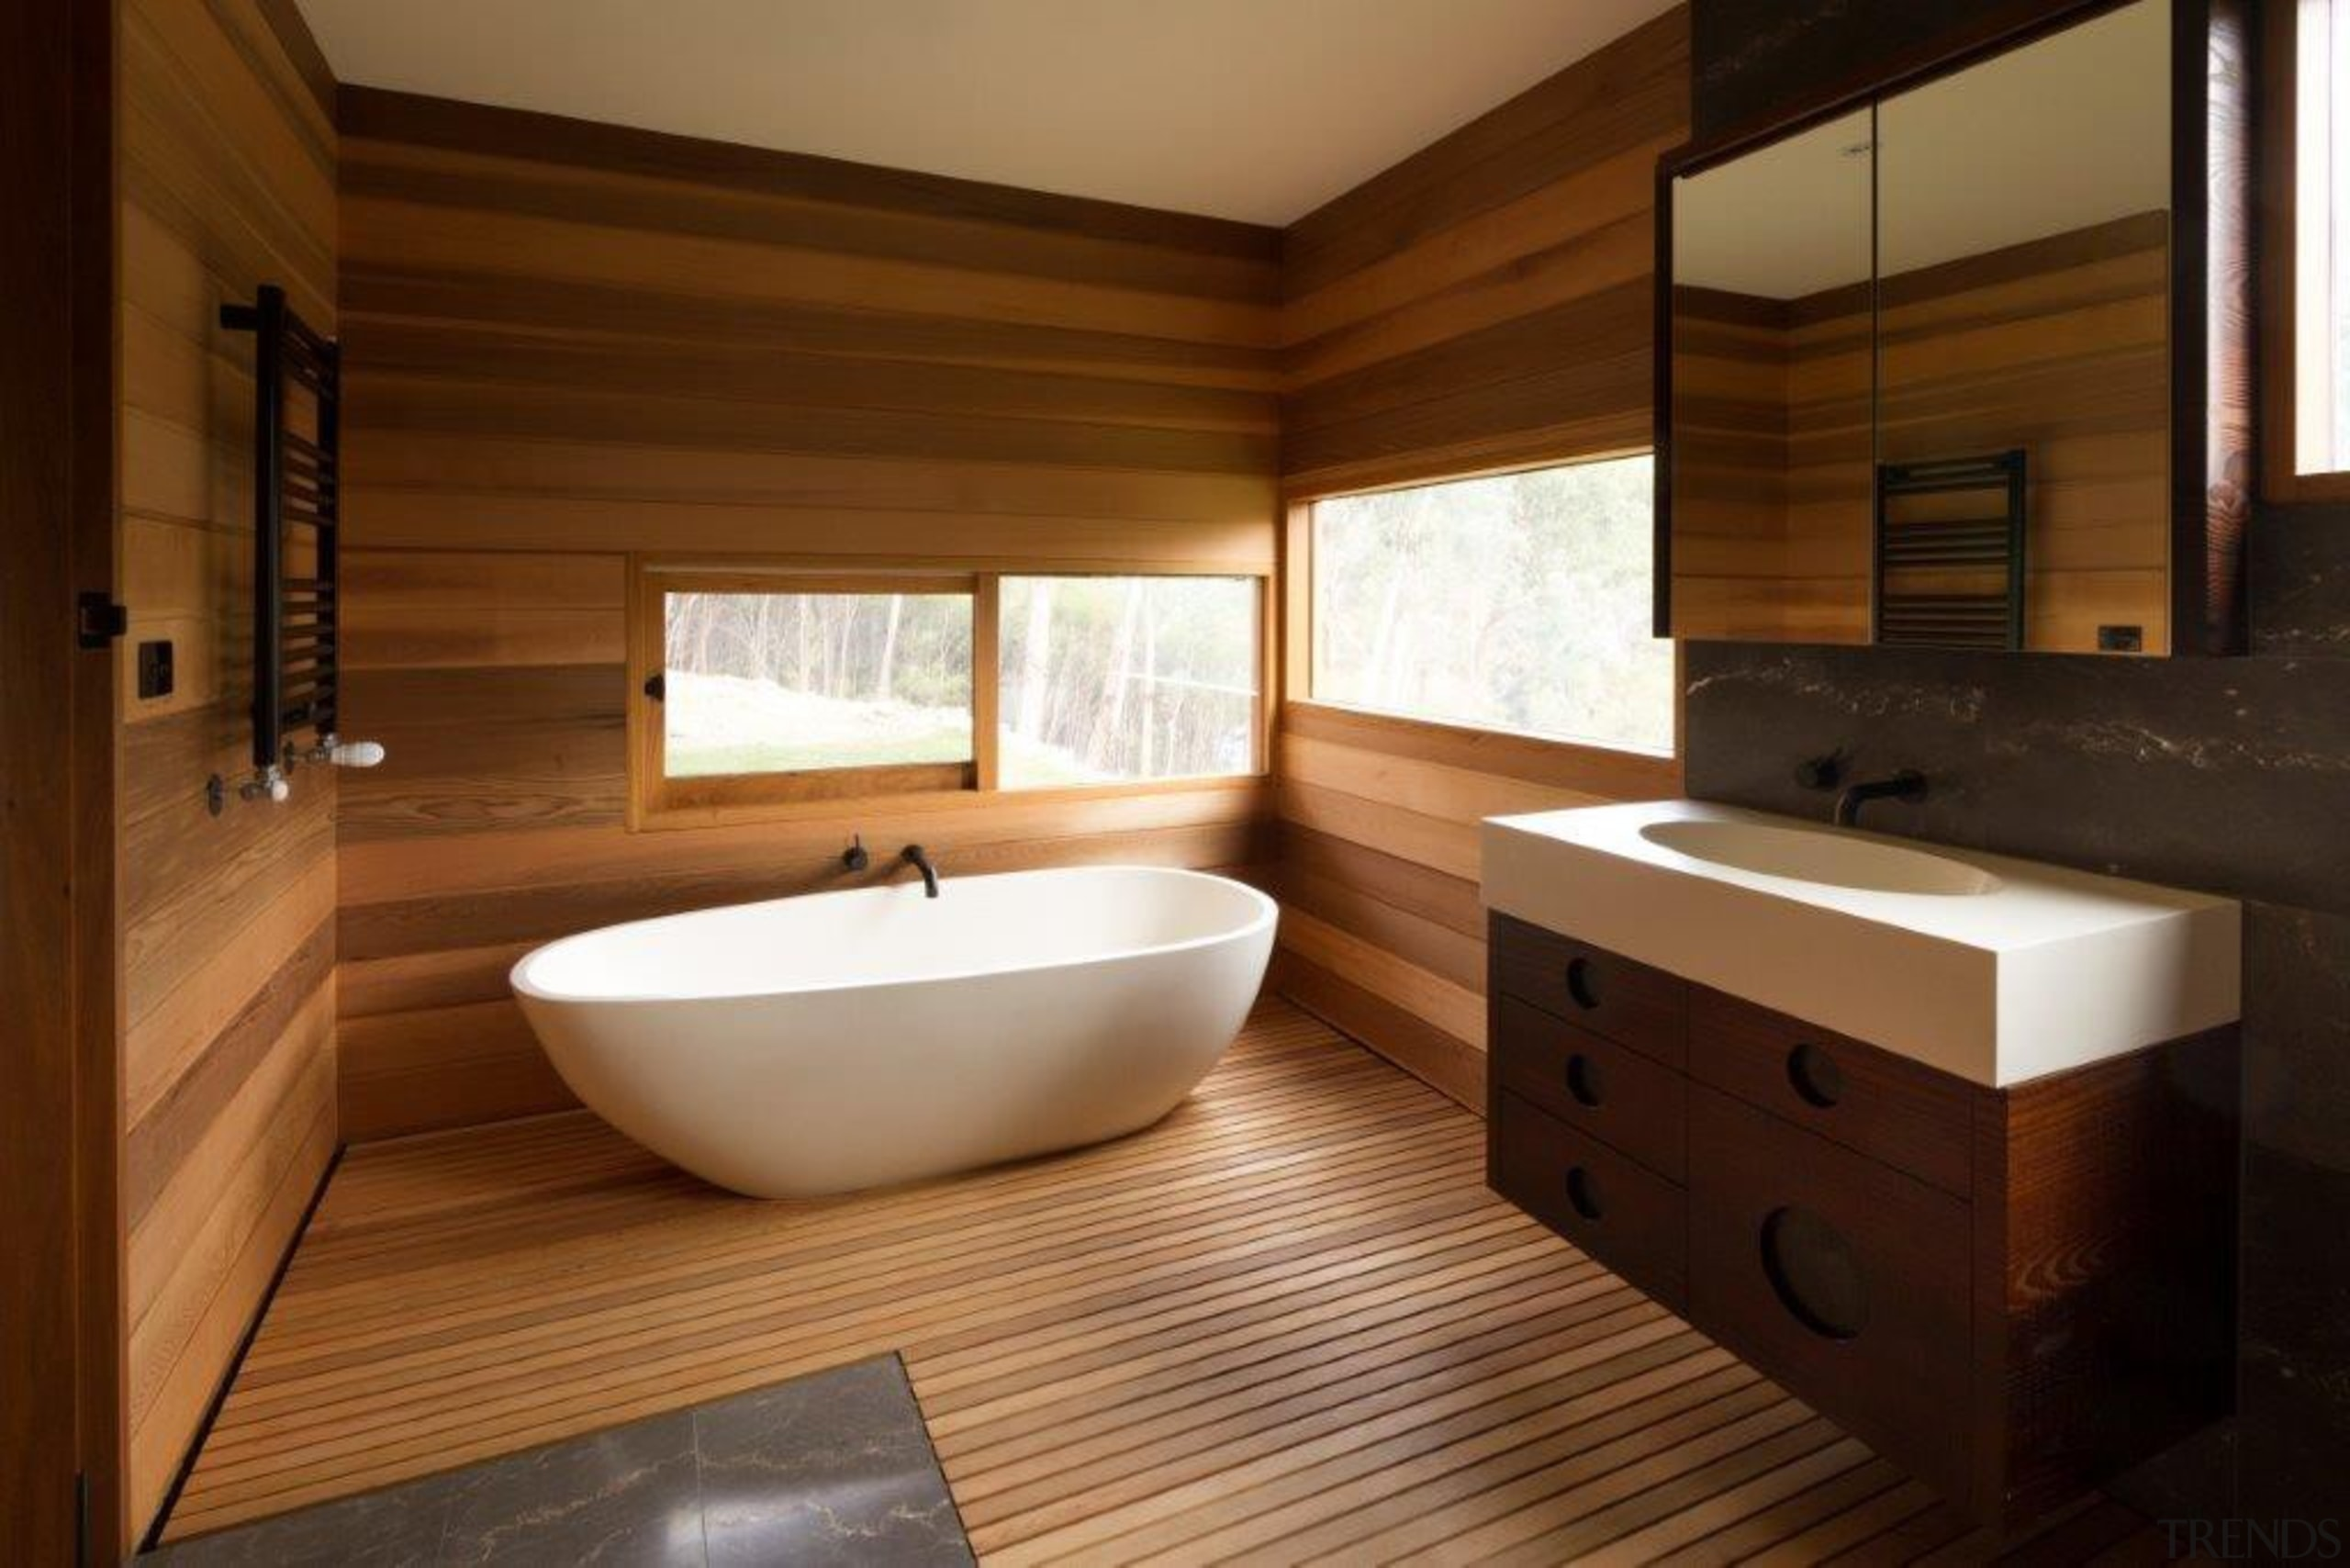 If you seek a perfect bathing experience, where architecture, bathroom, floor, flooring, hardwood, interior design, room, wood, wood flooring, brown